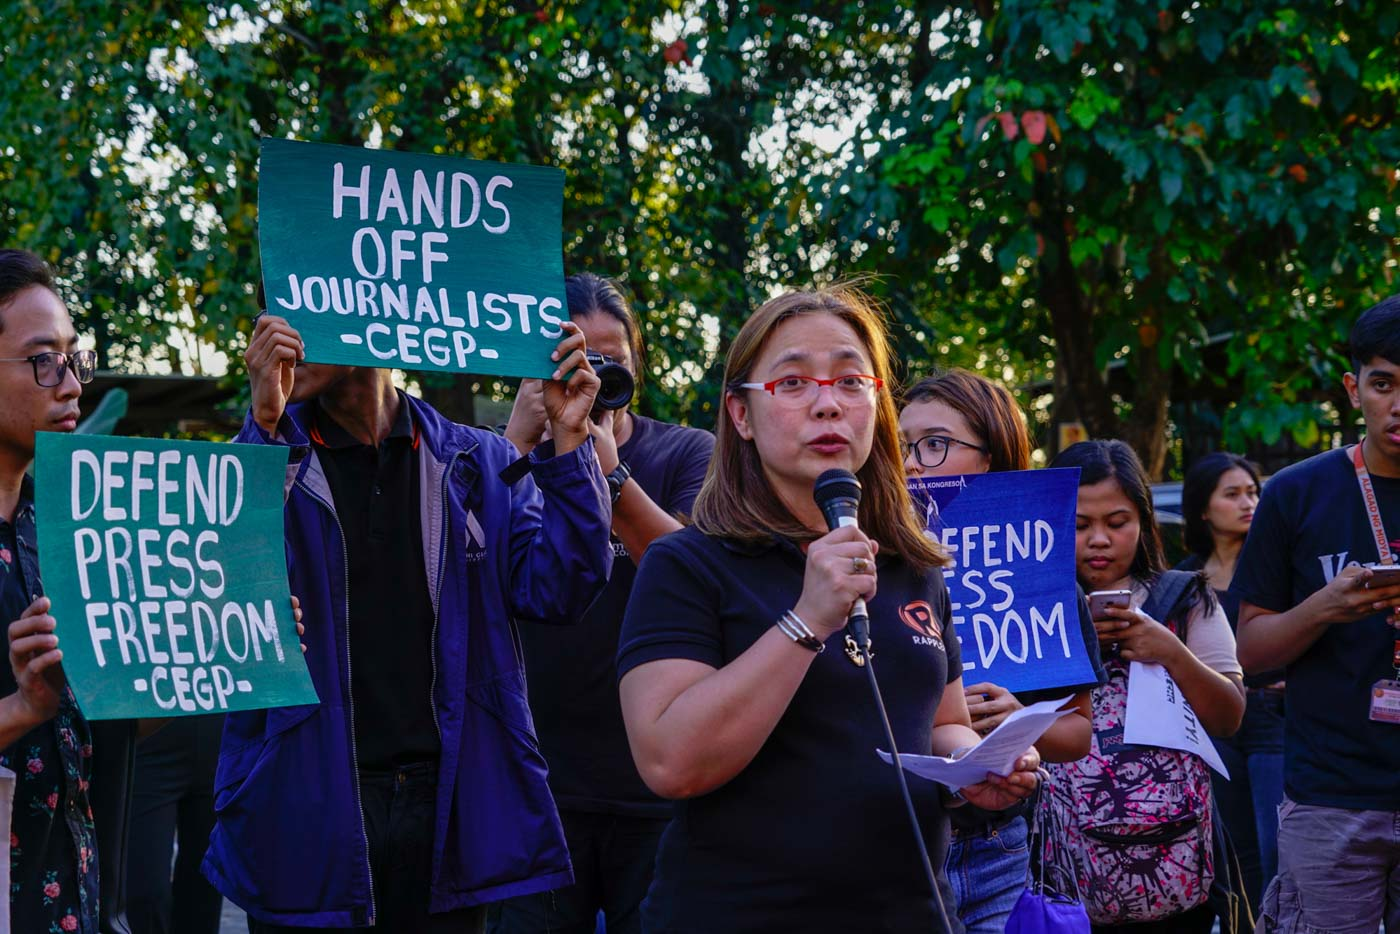 SPEAK OUT. Rappler's Gemma Bagayaua Mendoza talks about how integral press freedom is to democracy in a protest at UP CMC Veranda on February 14, 2019. Photo by Maria Tan/Rappler